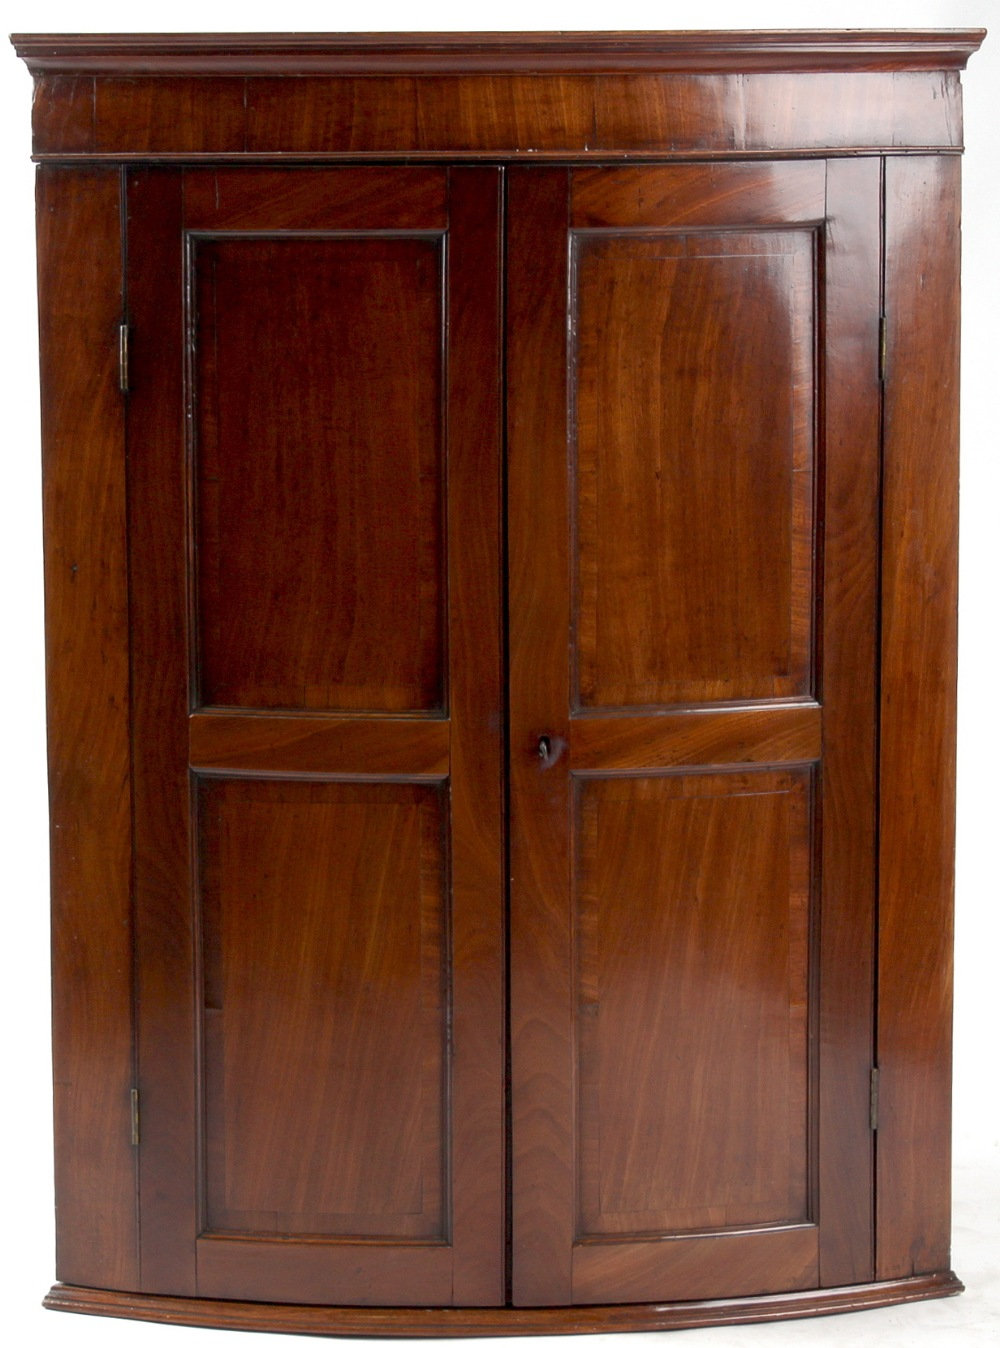 Lot 143 - Property of a deceased estate - a George III mahogany bow-fronted two-door corner wall cabinet,